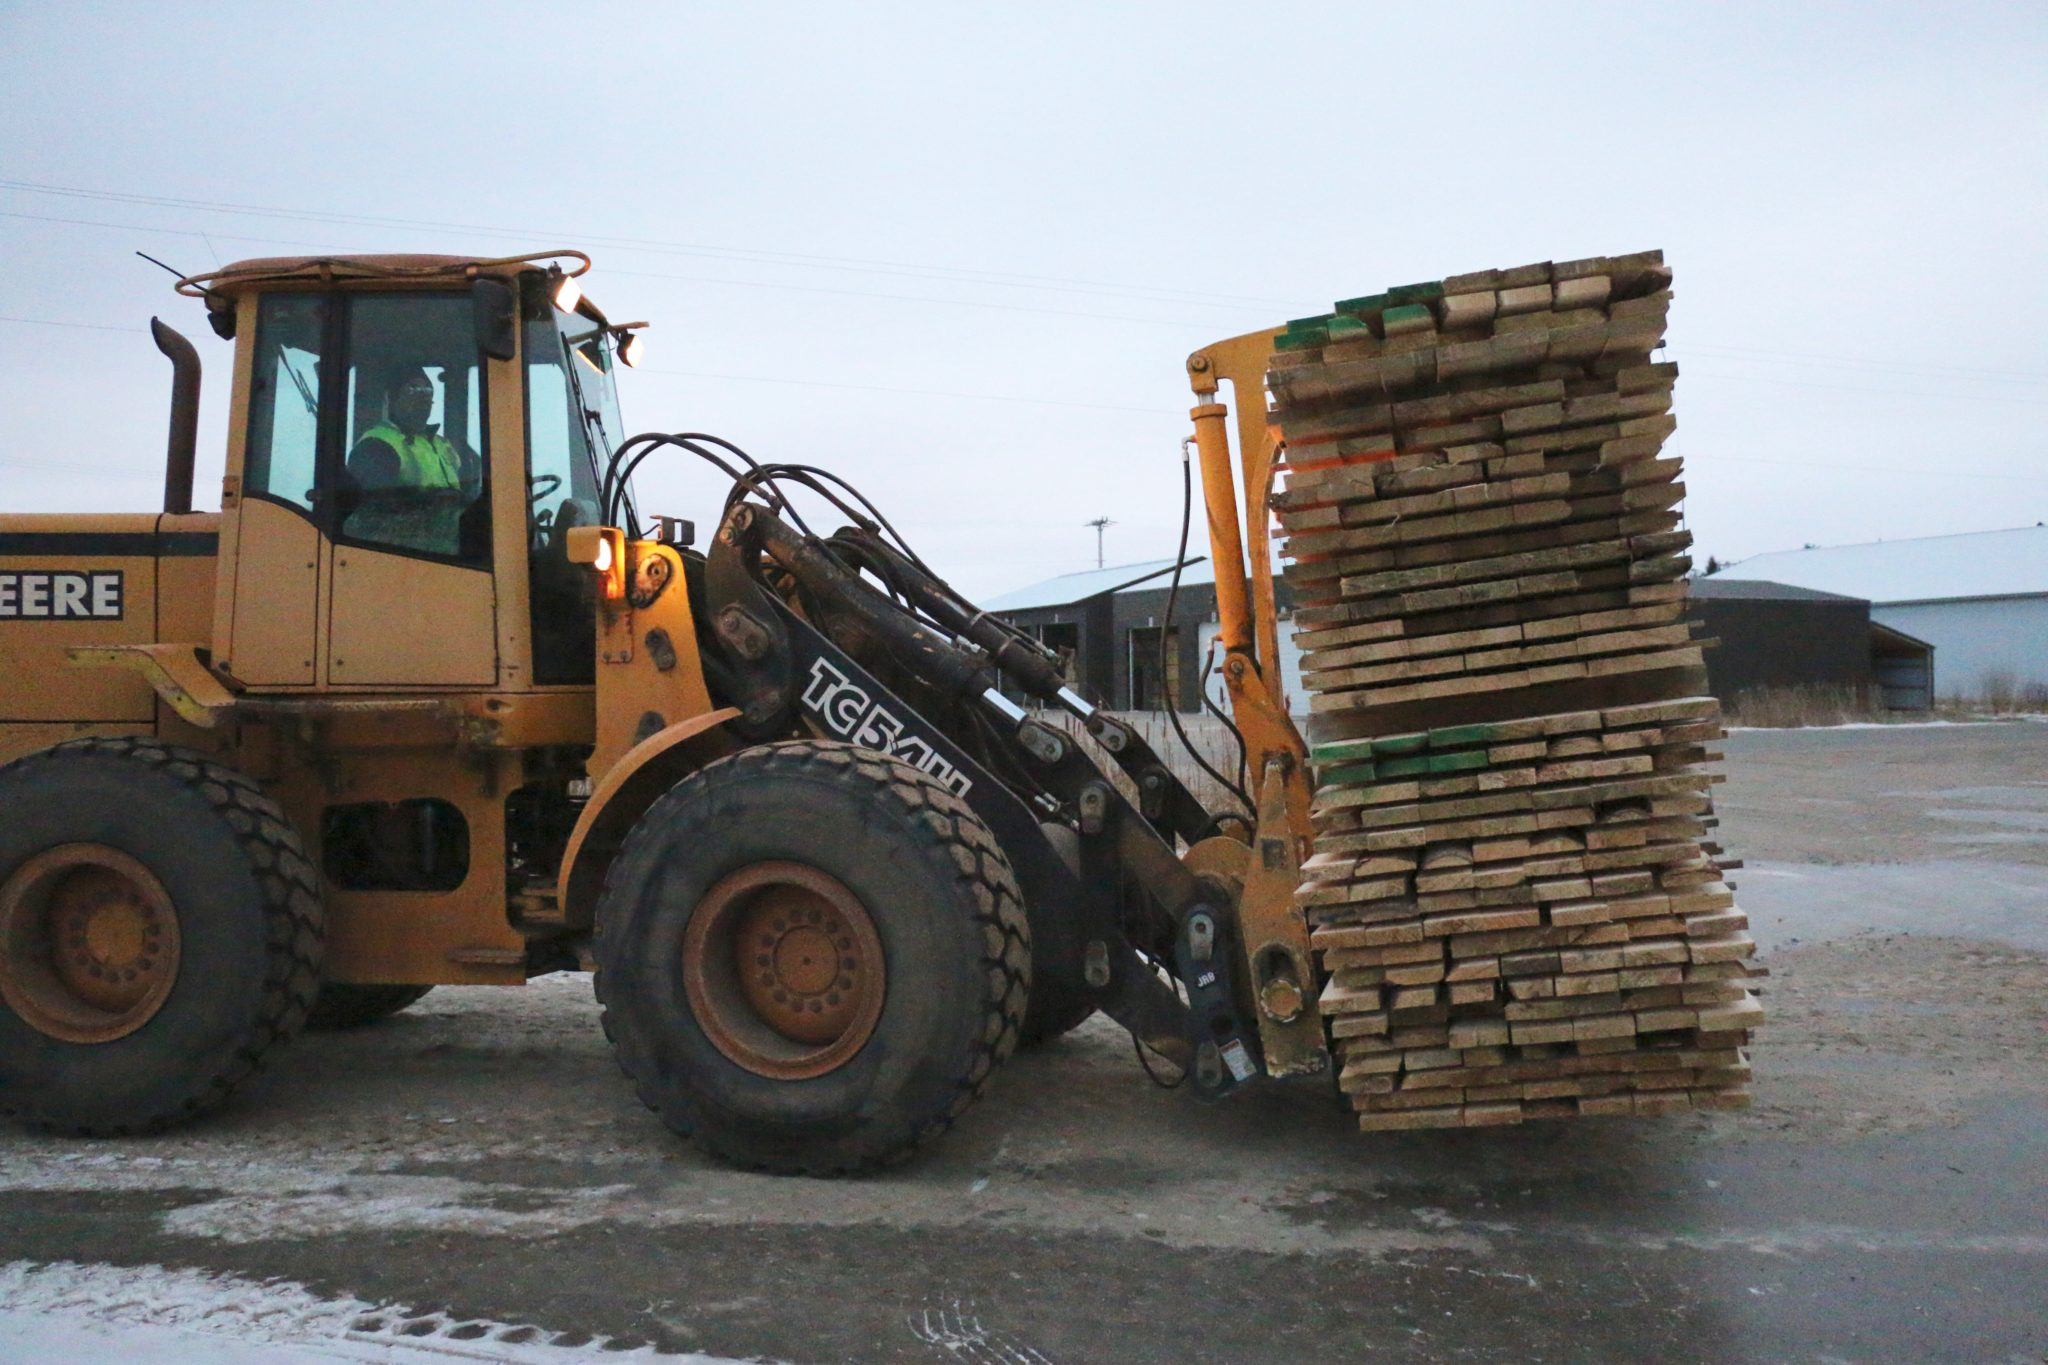 A Nelson Wood Shims employee operating a forklift, transporting boards to be made into shims